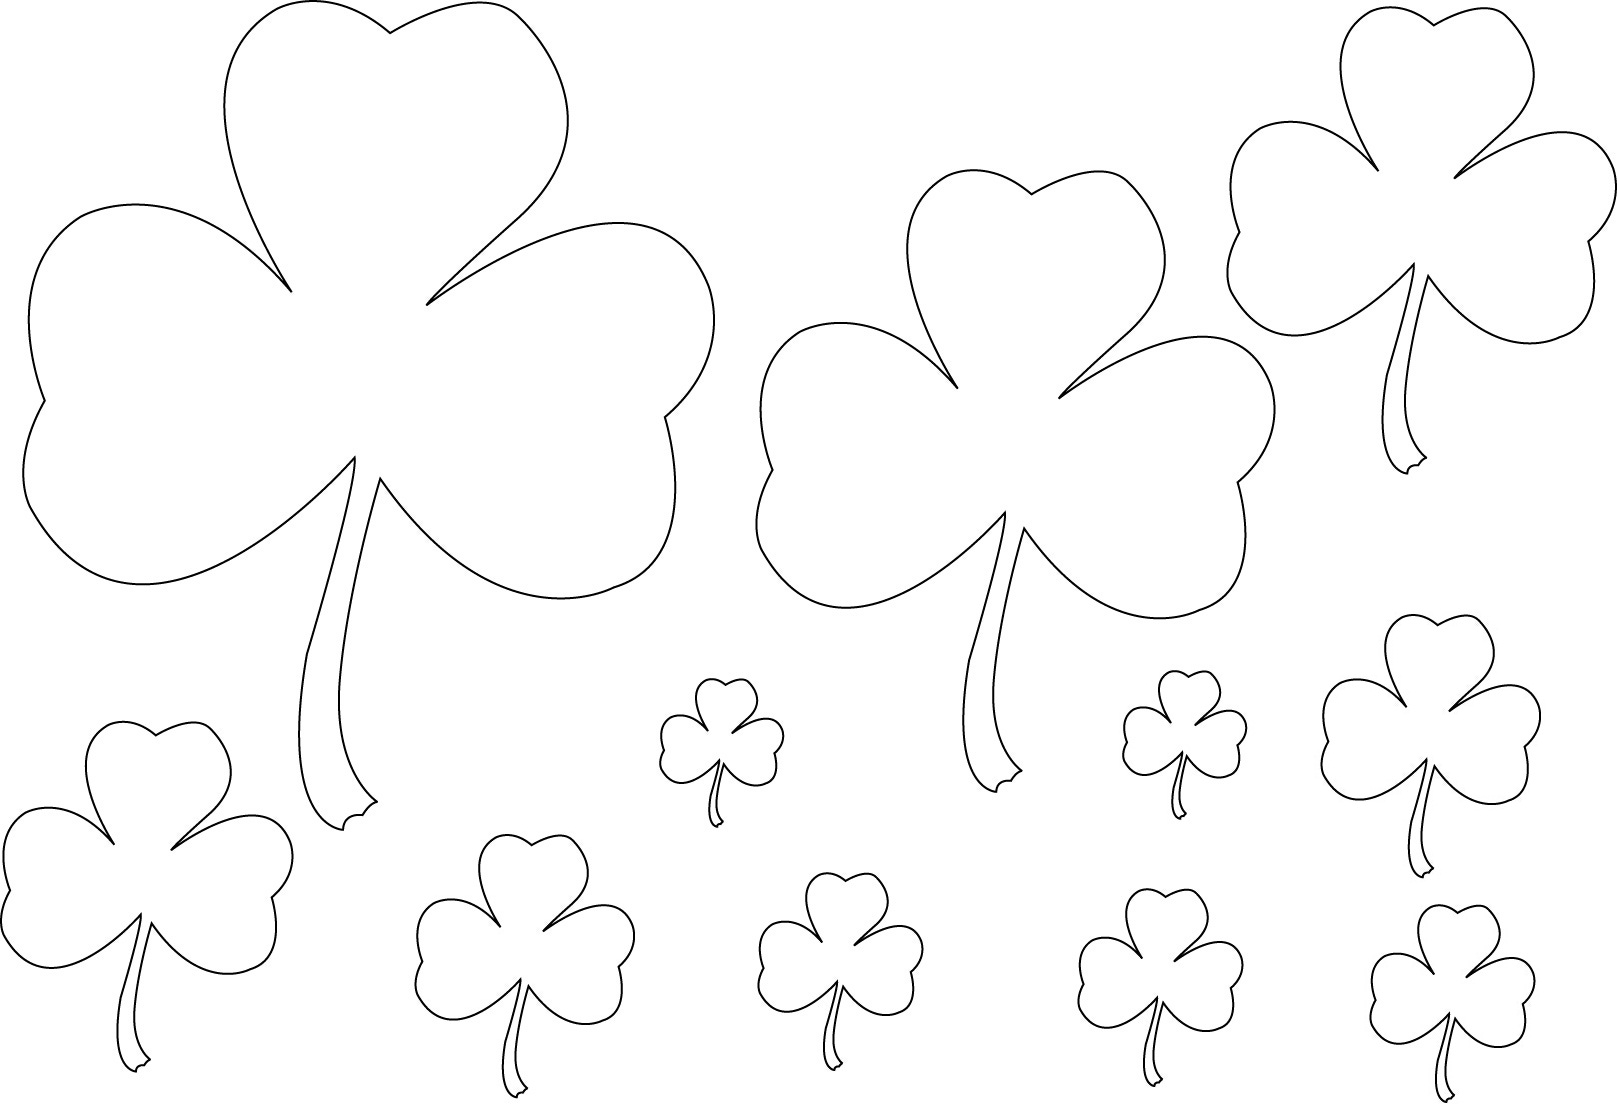 graphic about Printable Shamrock Coloring Pages known as Totally free Printable Shamrock Coloring Web pages For Young children